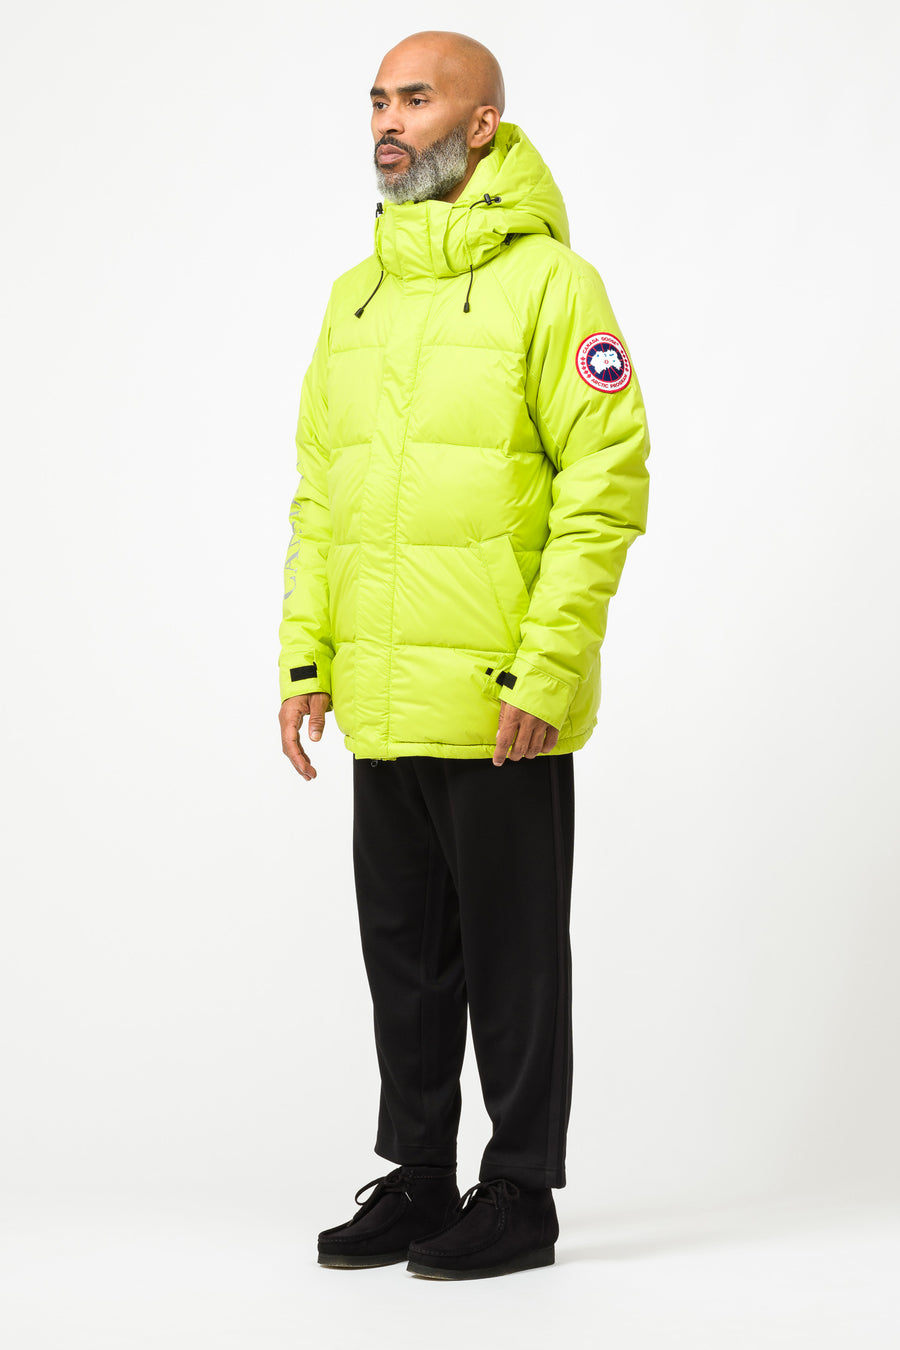 Canada Goose Approach Jacket in Aurora Green - Notre